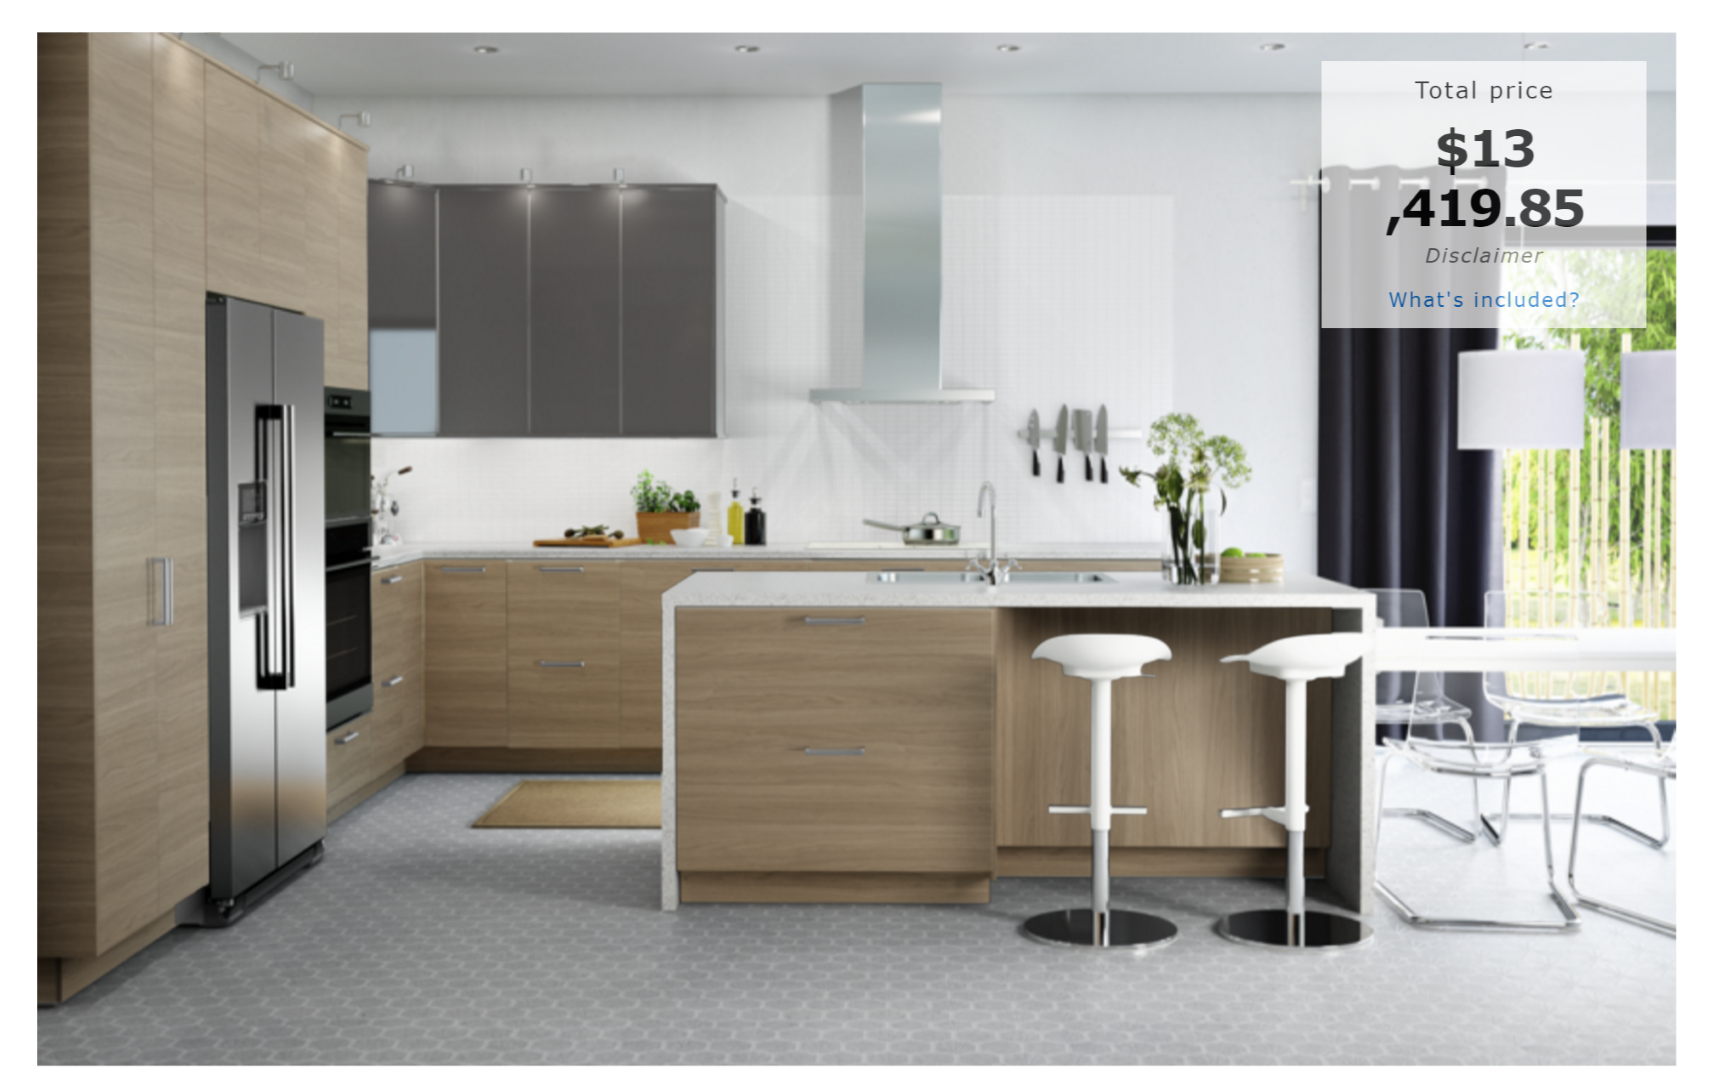 Interior Kitchen Cabinets Prices Per Linear Foot how much will an ikea kitchen cost